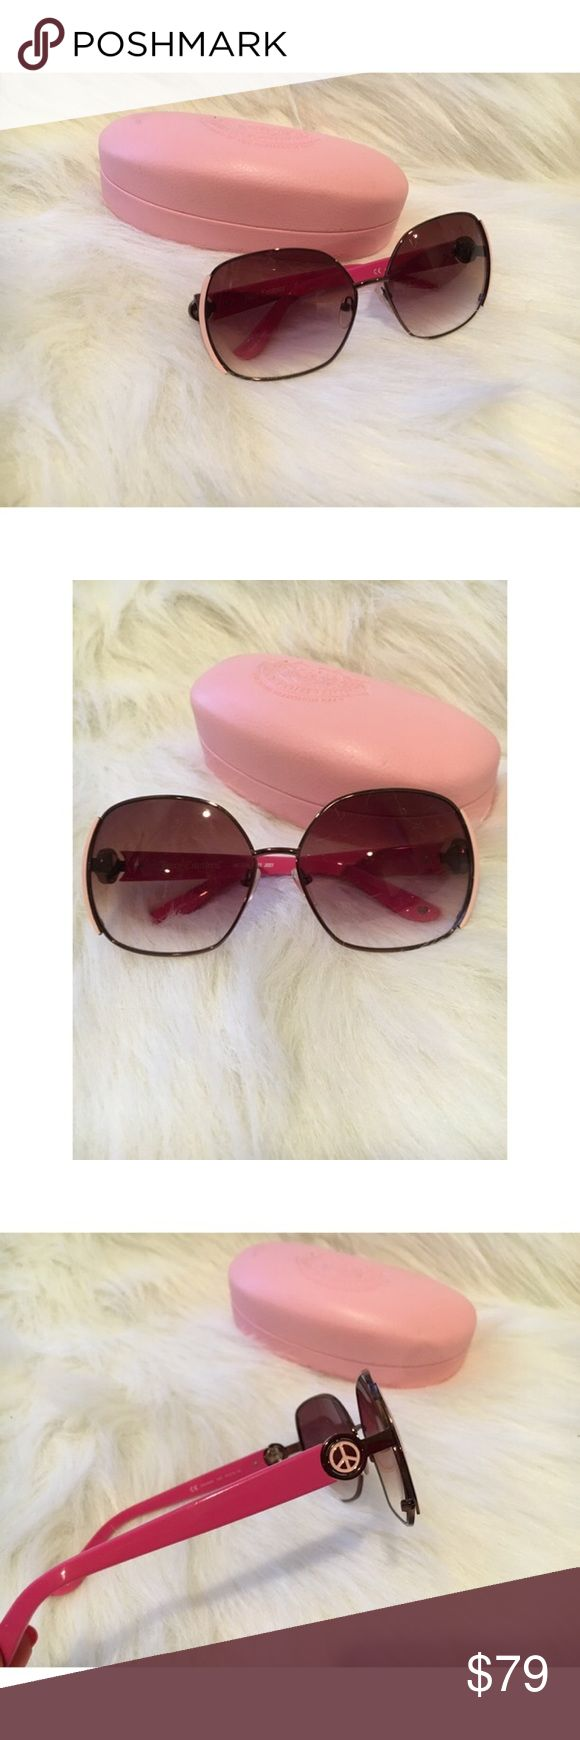 Juicy Couture Gradient Sunglasses Worn Once, Excellent Condition   Hot Pink sides, coupled with fantastic Brown Gradient lenses for a great look for any season. Peace signs on temple.   The frame is made from Metal, the lenses are made of tough and high-grade Polycarbonate.   * Lens Colour: Brown Gradient  * Frame Shape: Oval  * Frame Type: Semi Rimless  * Frame Material: Metal  * Lens Material: Polycarbonate  * Details:UV Protection   🔴No Trades🔴✅Bundle and Save ✅ Juicy Couture…